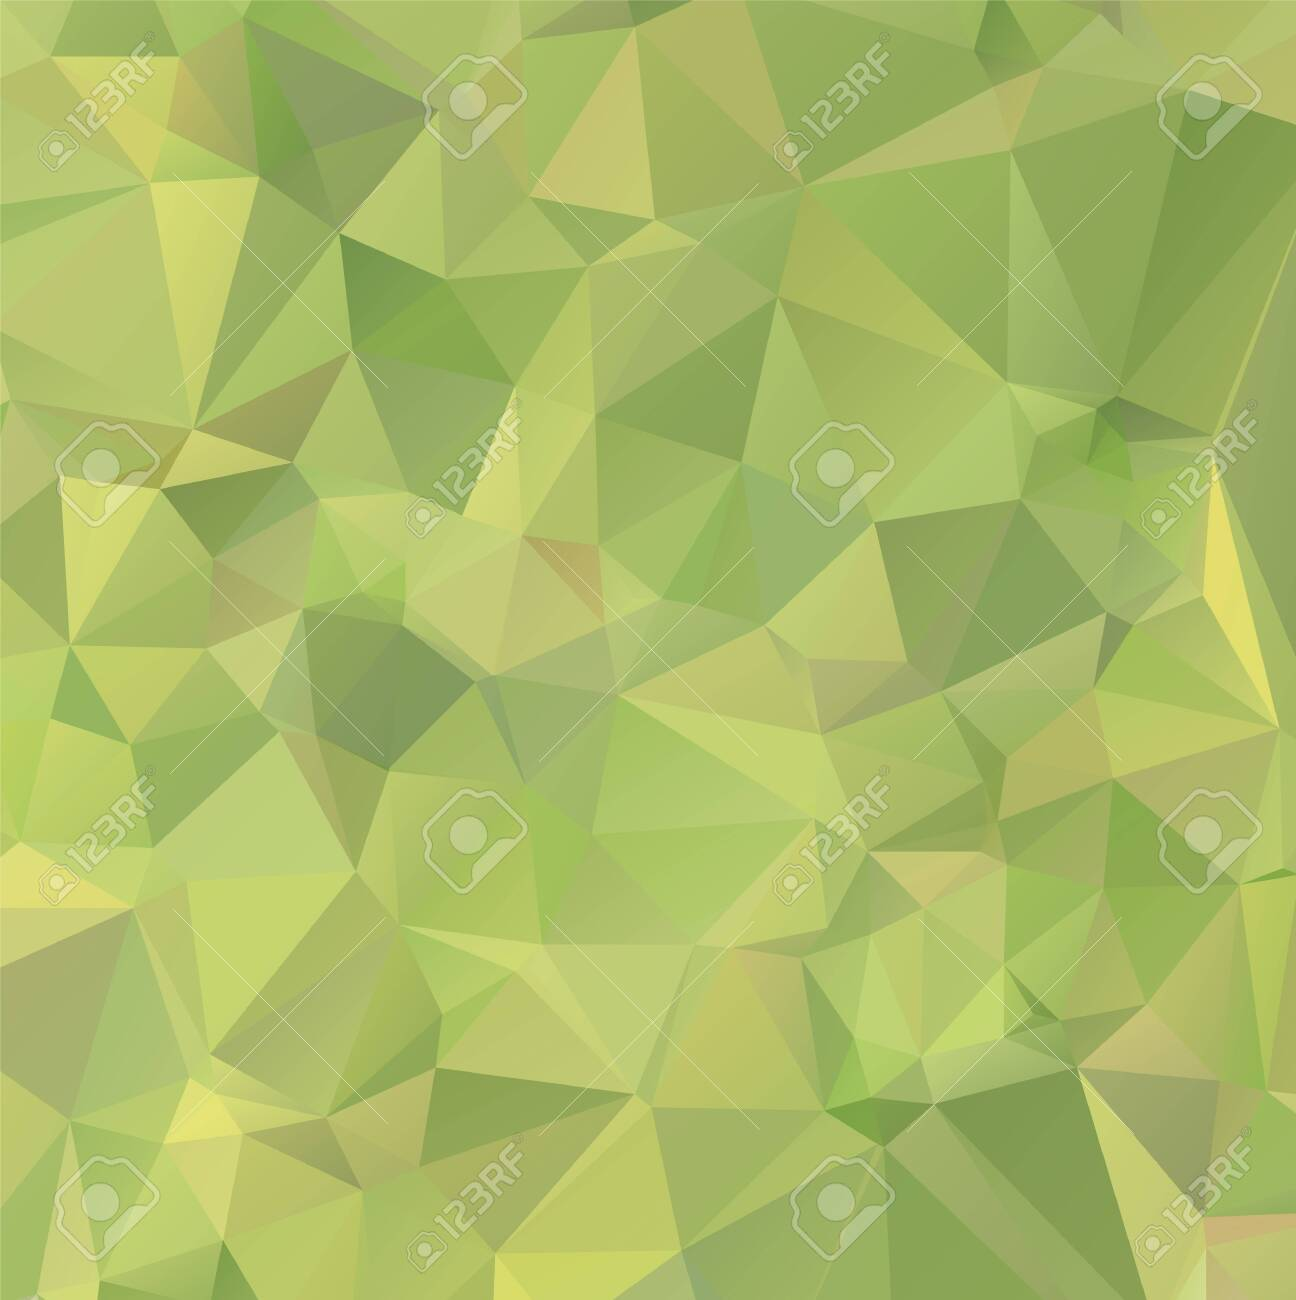 Light Green vector polygon abstract backdrop. Polygonal abstract vector with gradient. Textured pattern for your backgrounds - 125971641